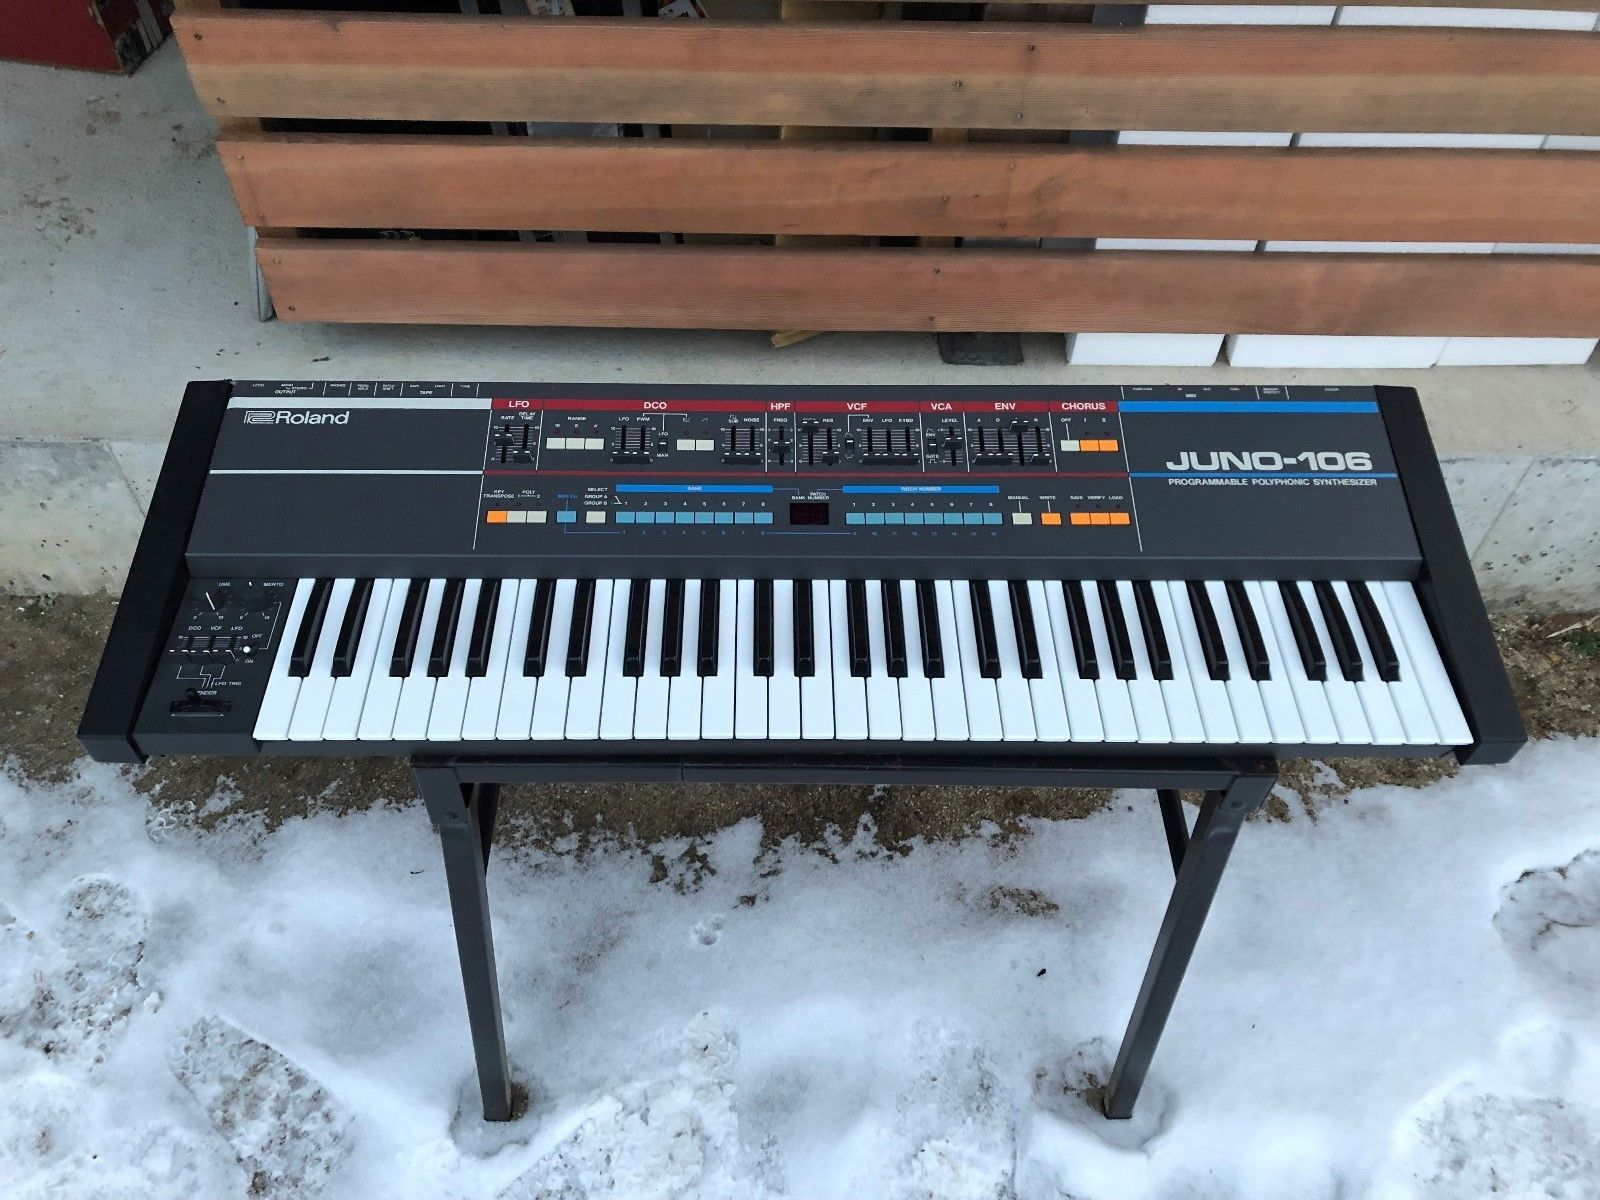 Roland JUNO-106 6 voice polyphonic synthesizer serviced